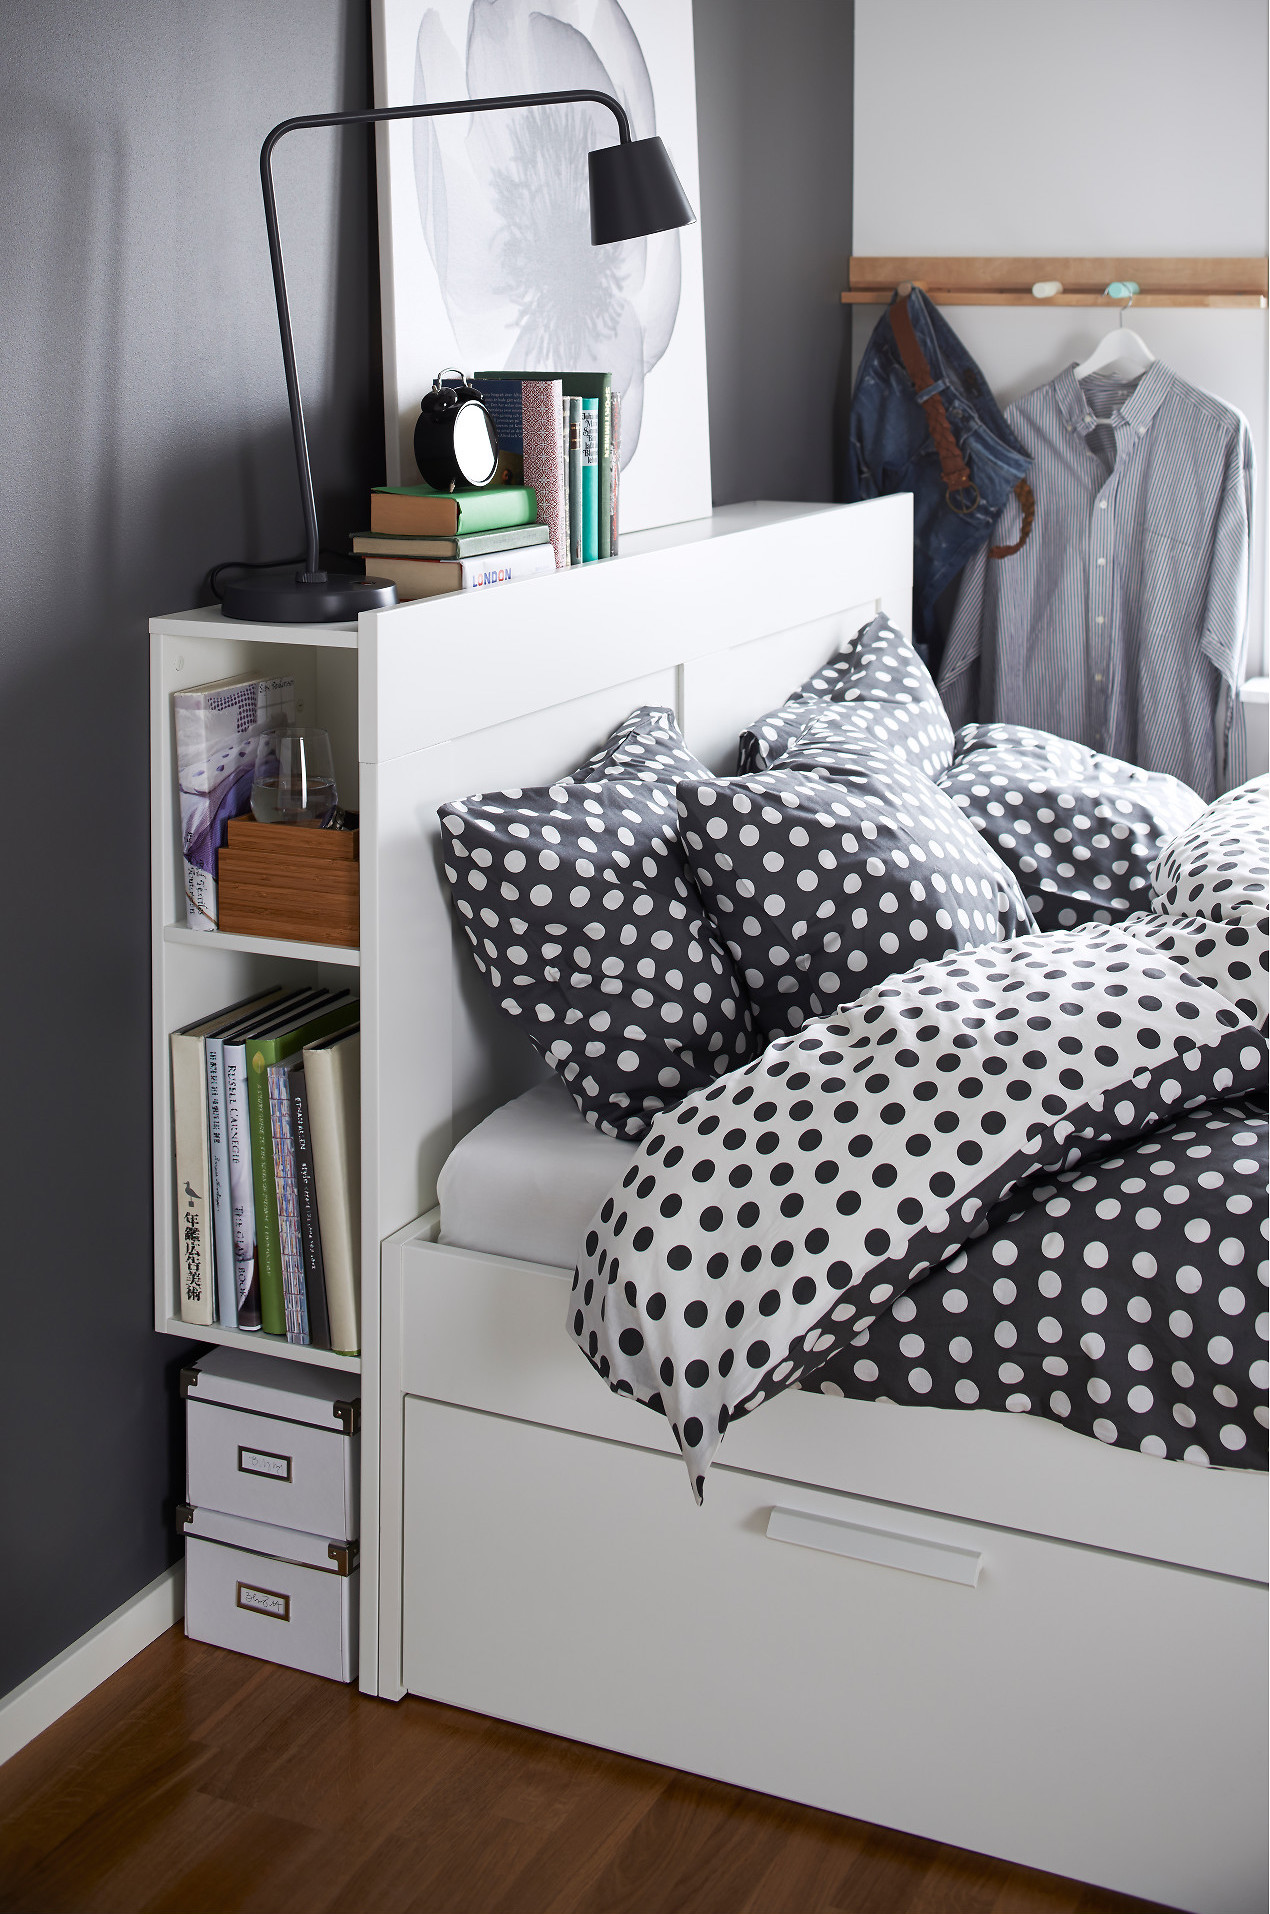 Best IKEA Furniture for Your Small Bedroom | Apartment Therapy